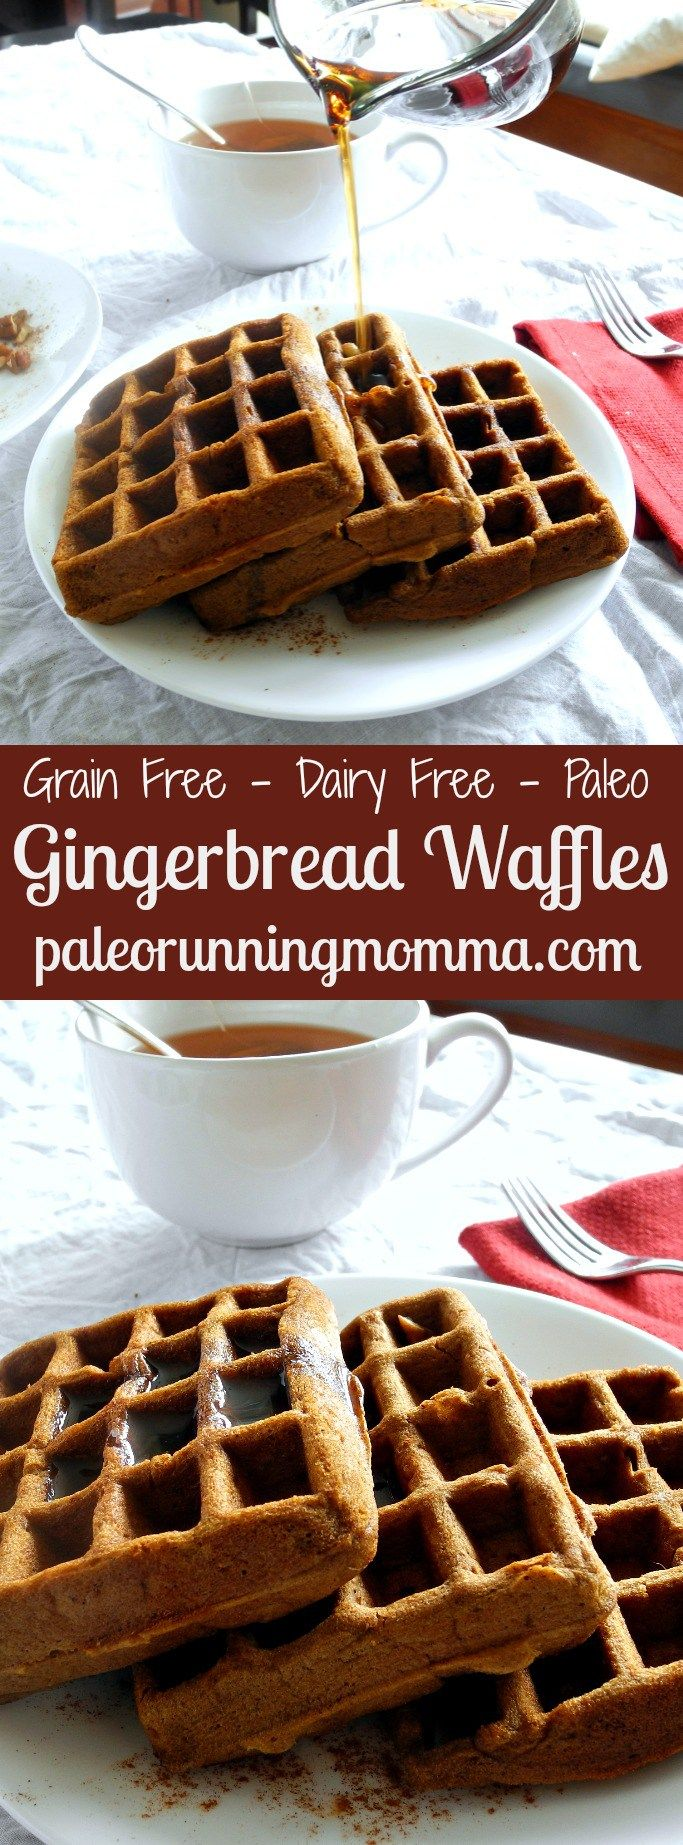 Grain Free, Dairy Free, Paleo Gingerbread Waffles @paleorunmomma - These waffles are made with coconut and tapioca flour, sweetened with molasses and spiced with cinnamon, ginger and cloves